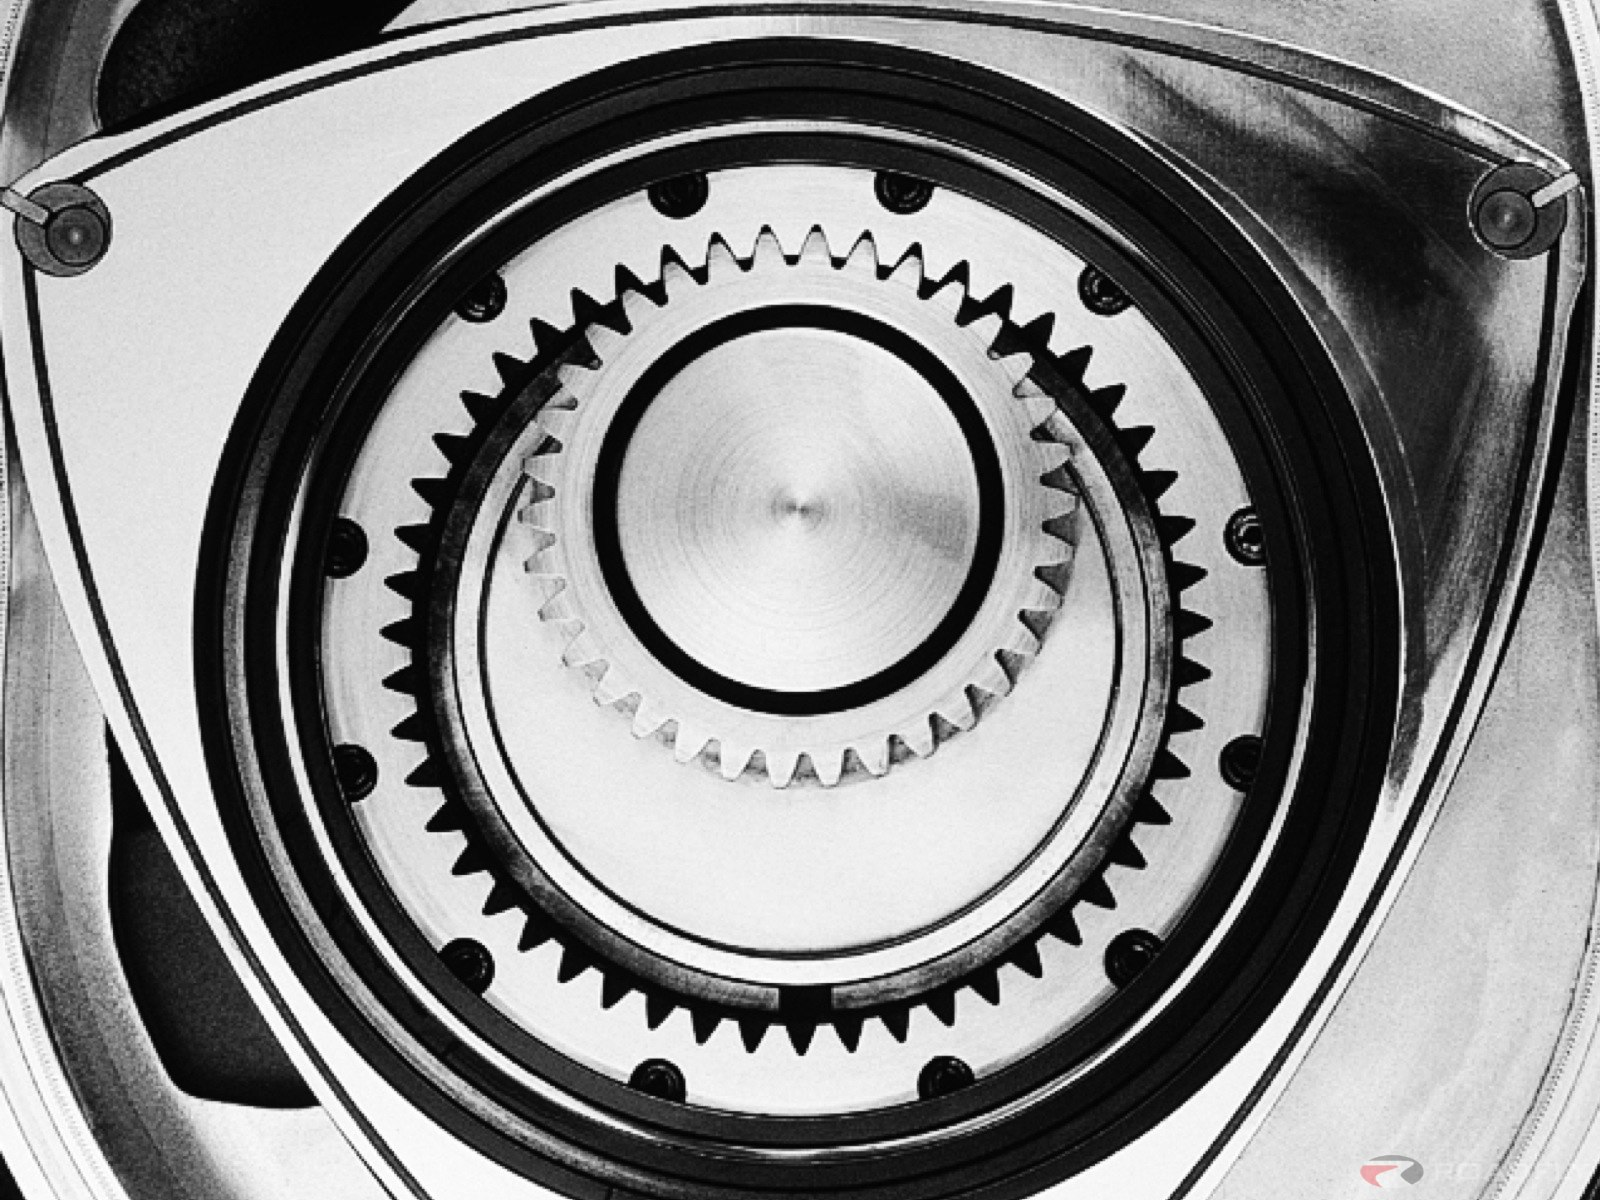 rotary engine 1221 the wankel rotary engine 223 3 explain why, if the point of tangency of the two circles has moved coun-terclockwise around the small circle through θ radians, then the vertex p.